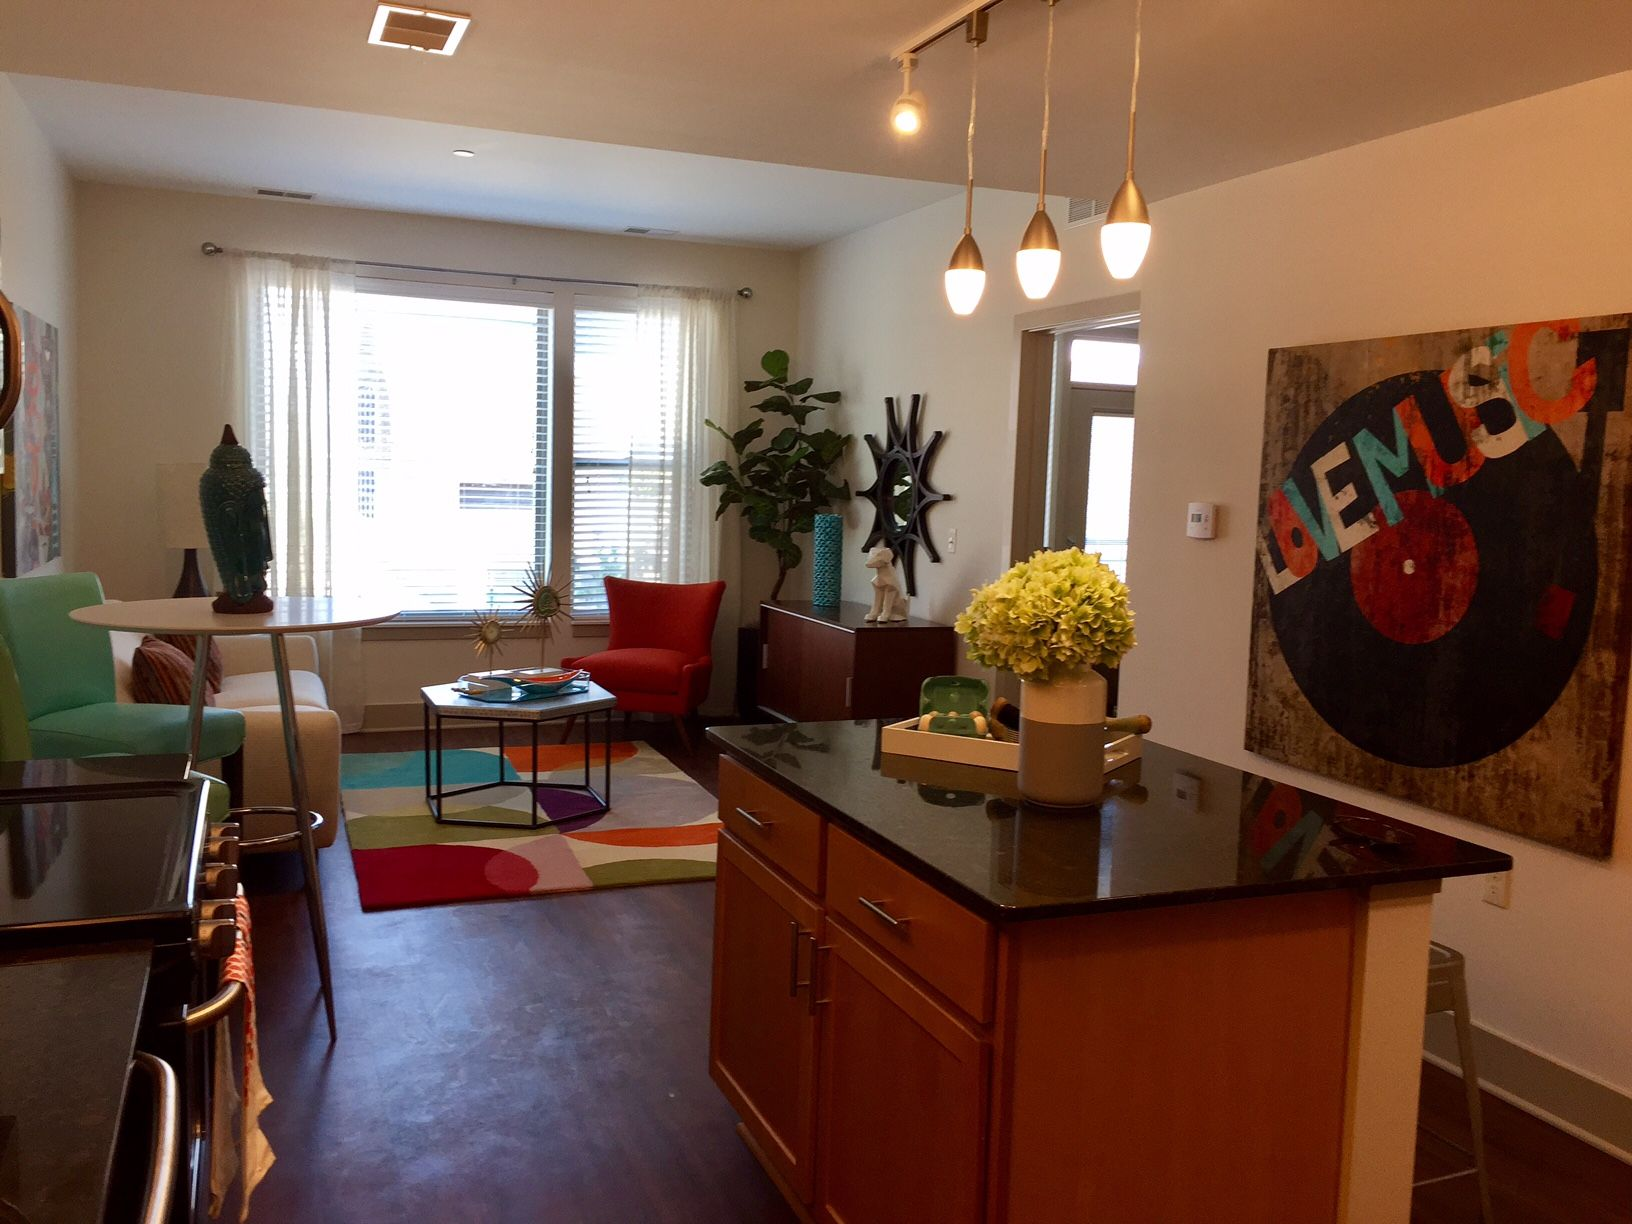 Orleans Landing Apartments Features Central Air Conditioning Modern Kitchen Apartmentliving Woodflooring U Modern Apartment Urban Living Apartment Living